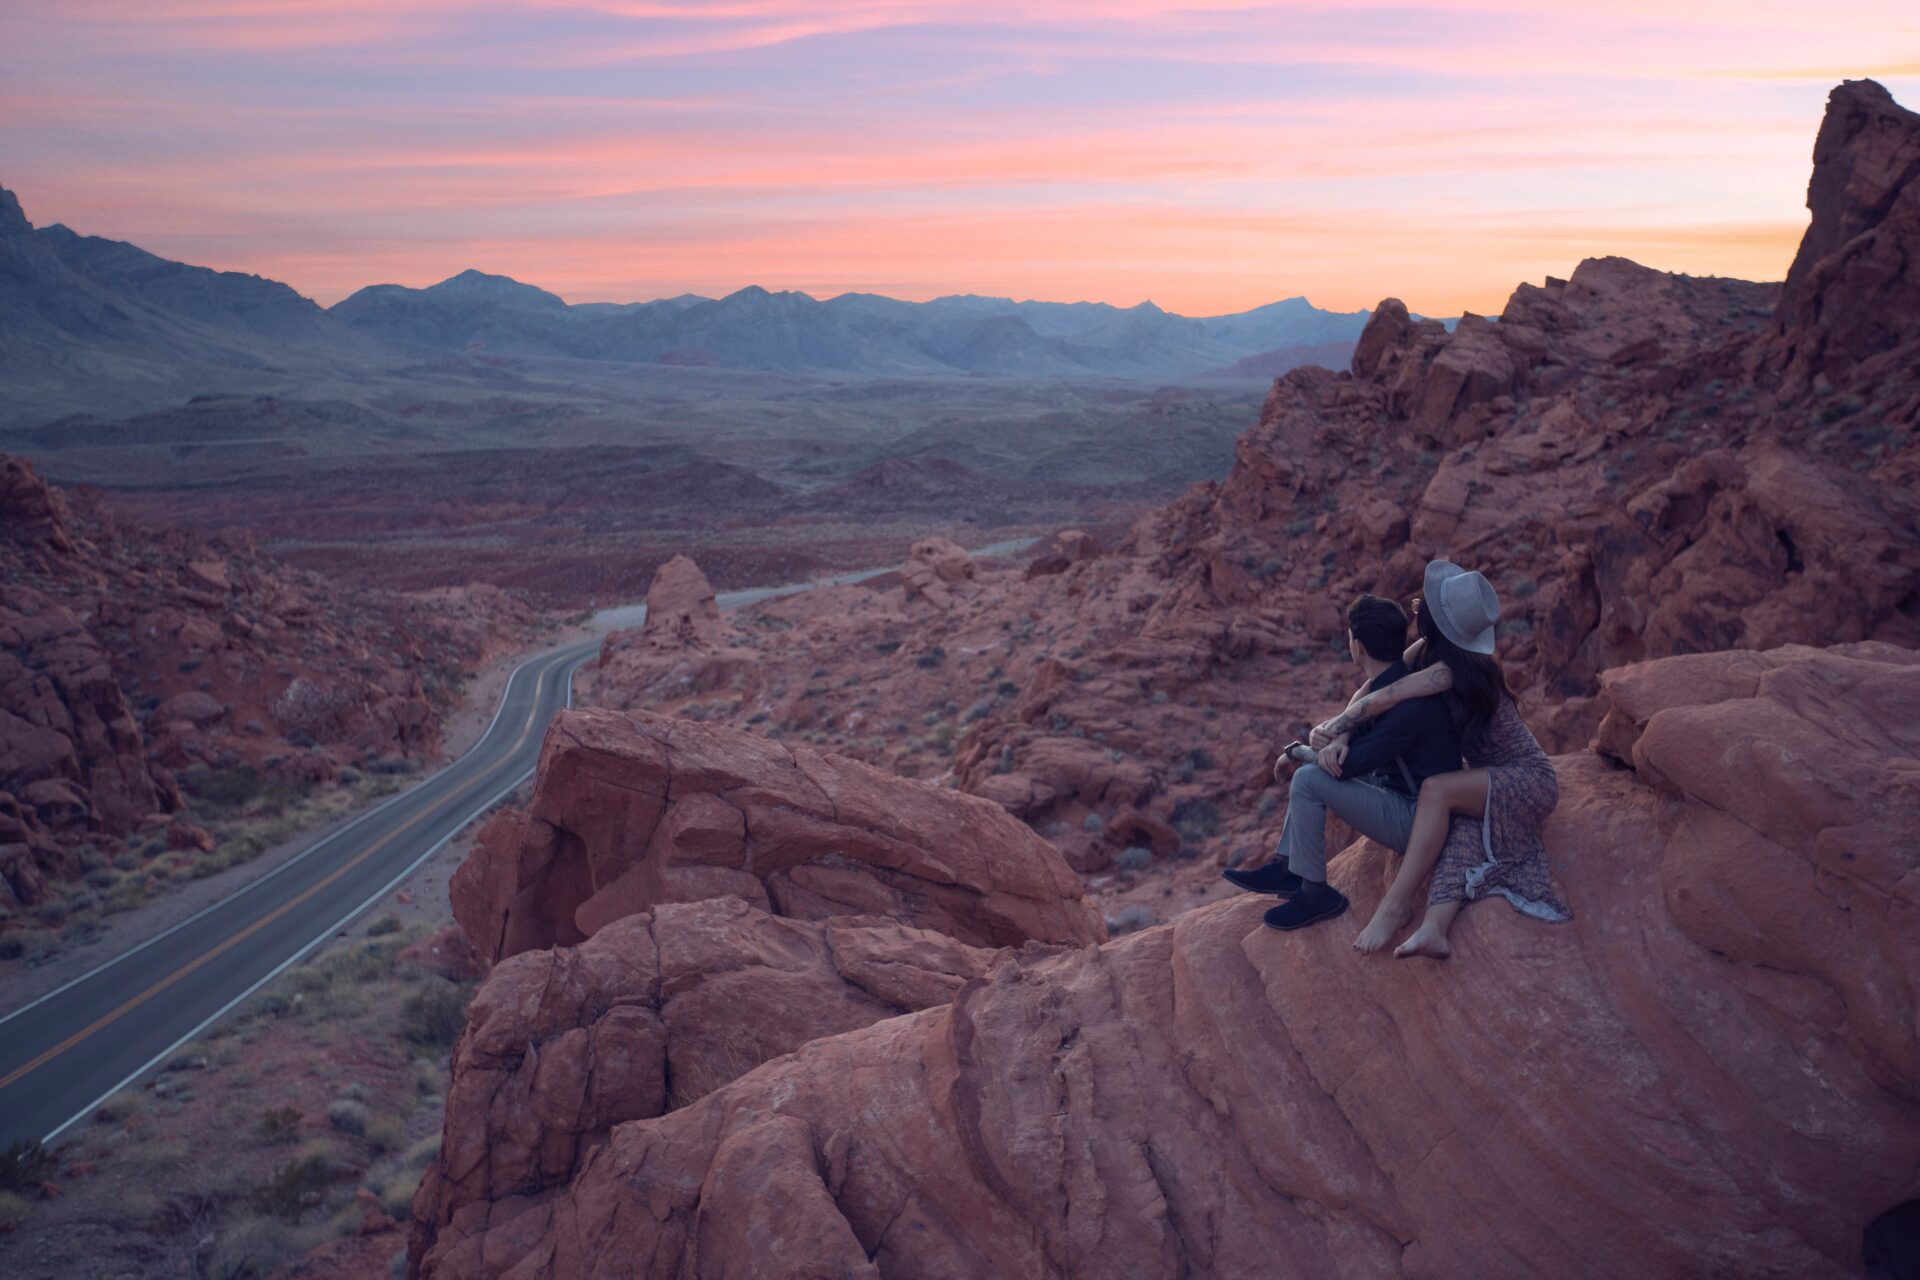 Couple watch sun set over sandstone landscape from high above road